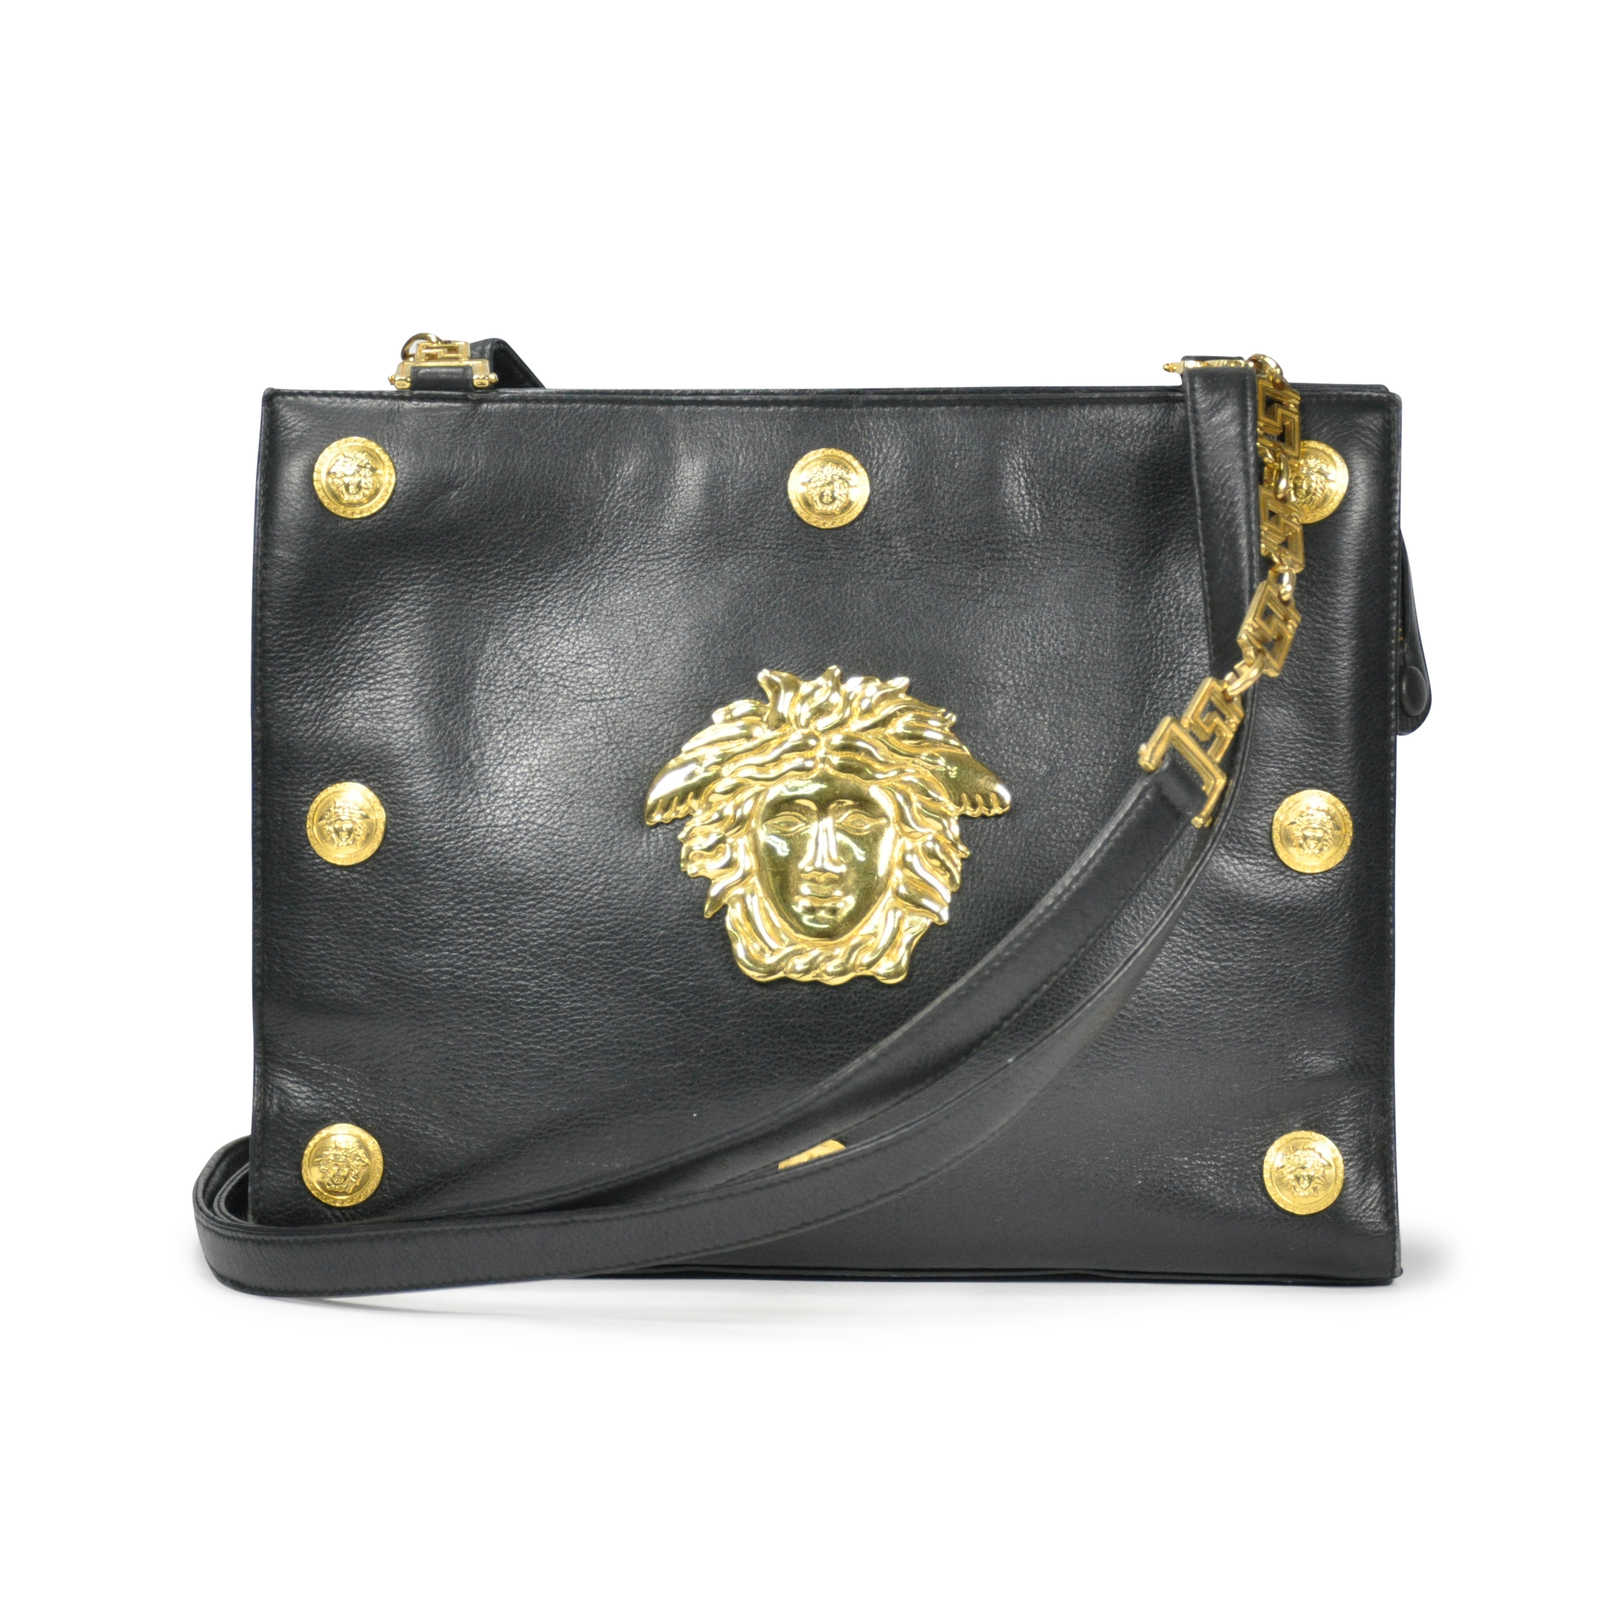 Authentic Vintage Versace Medusa Bag Pss 201 00008 Thumbnail 0